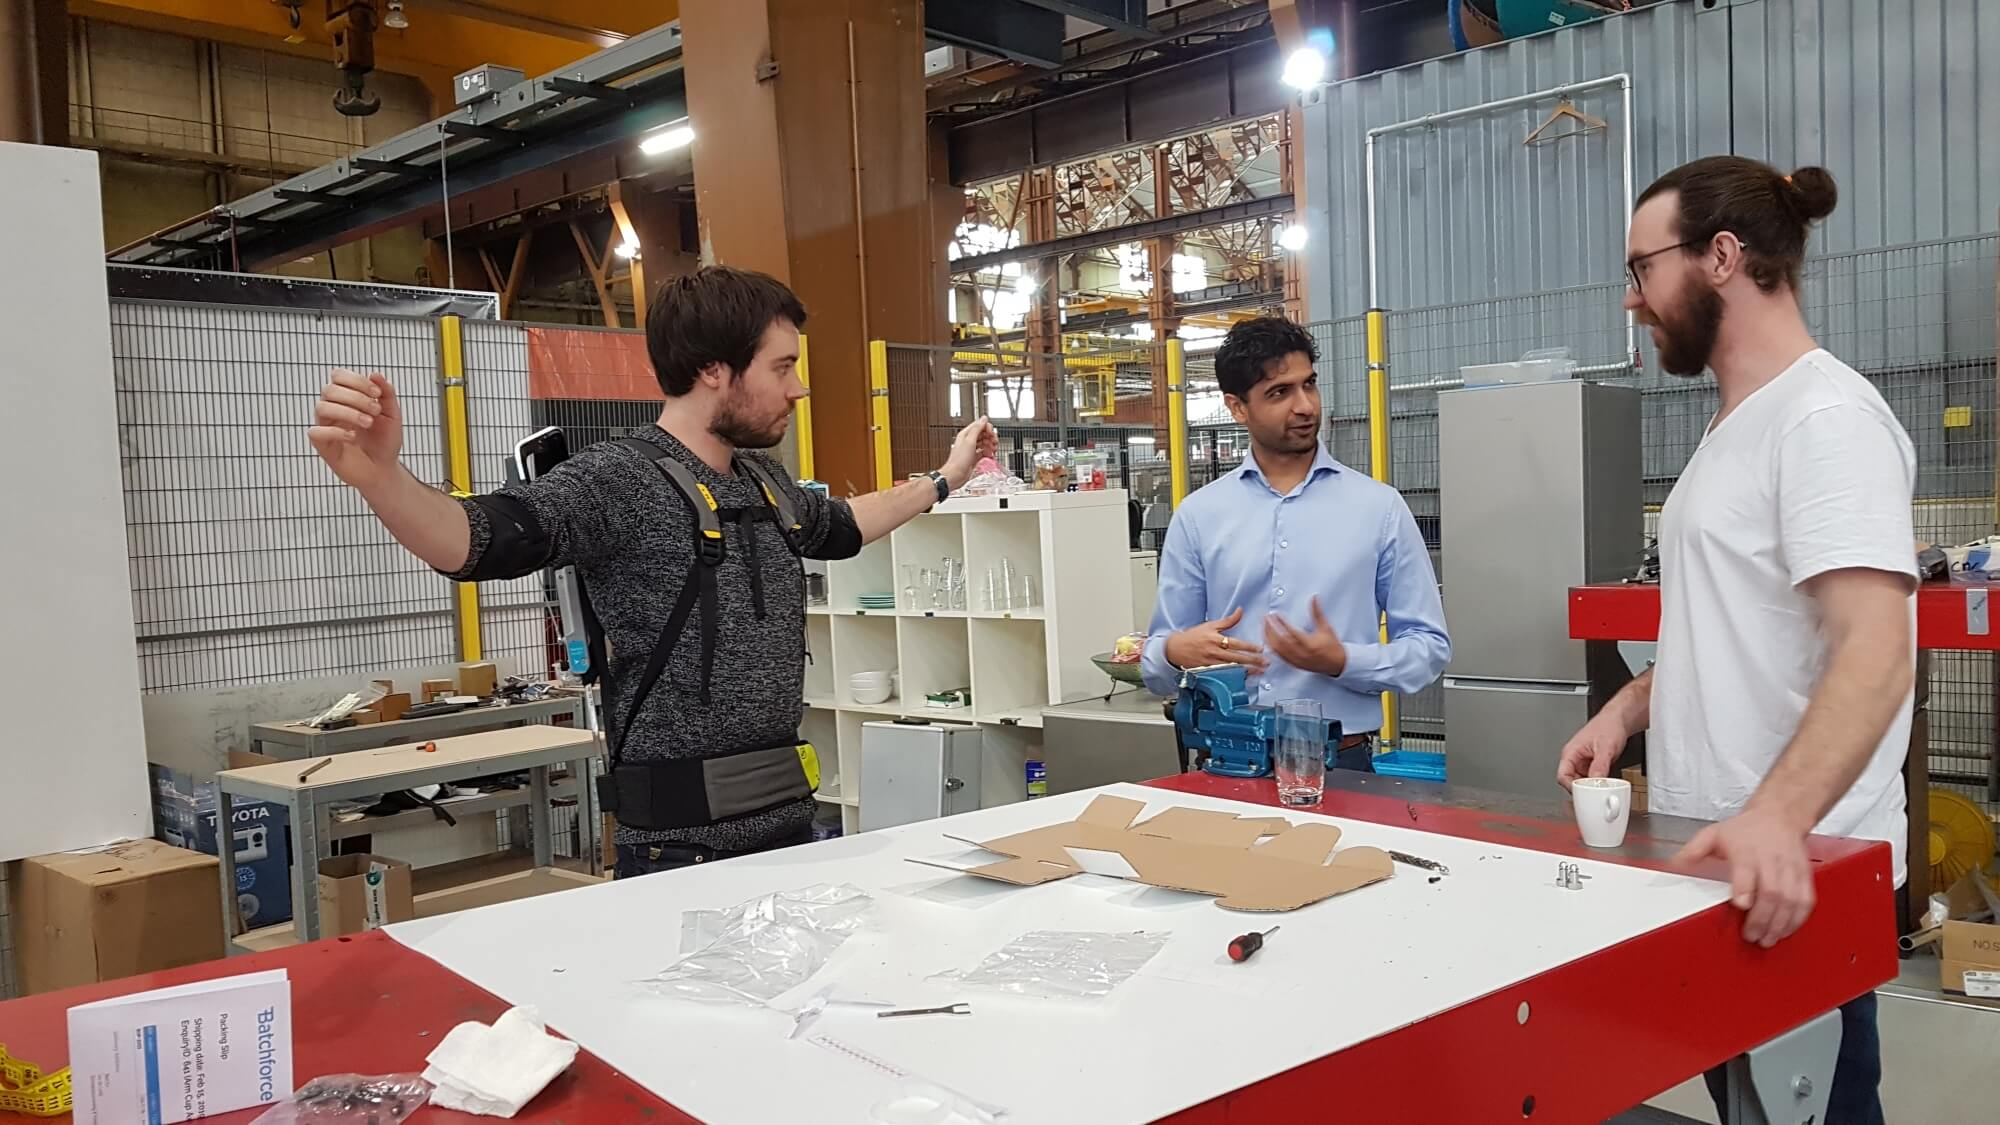 Gaurav and the Skelex team discuss future developments to the exoskeleton.